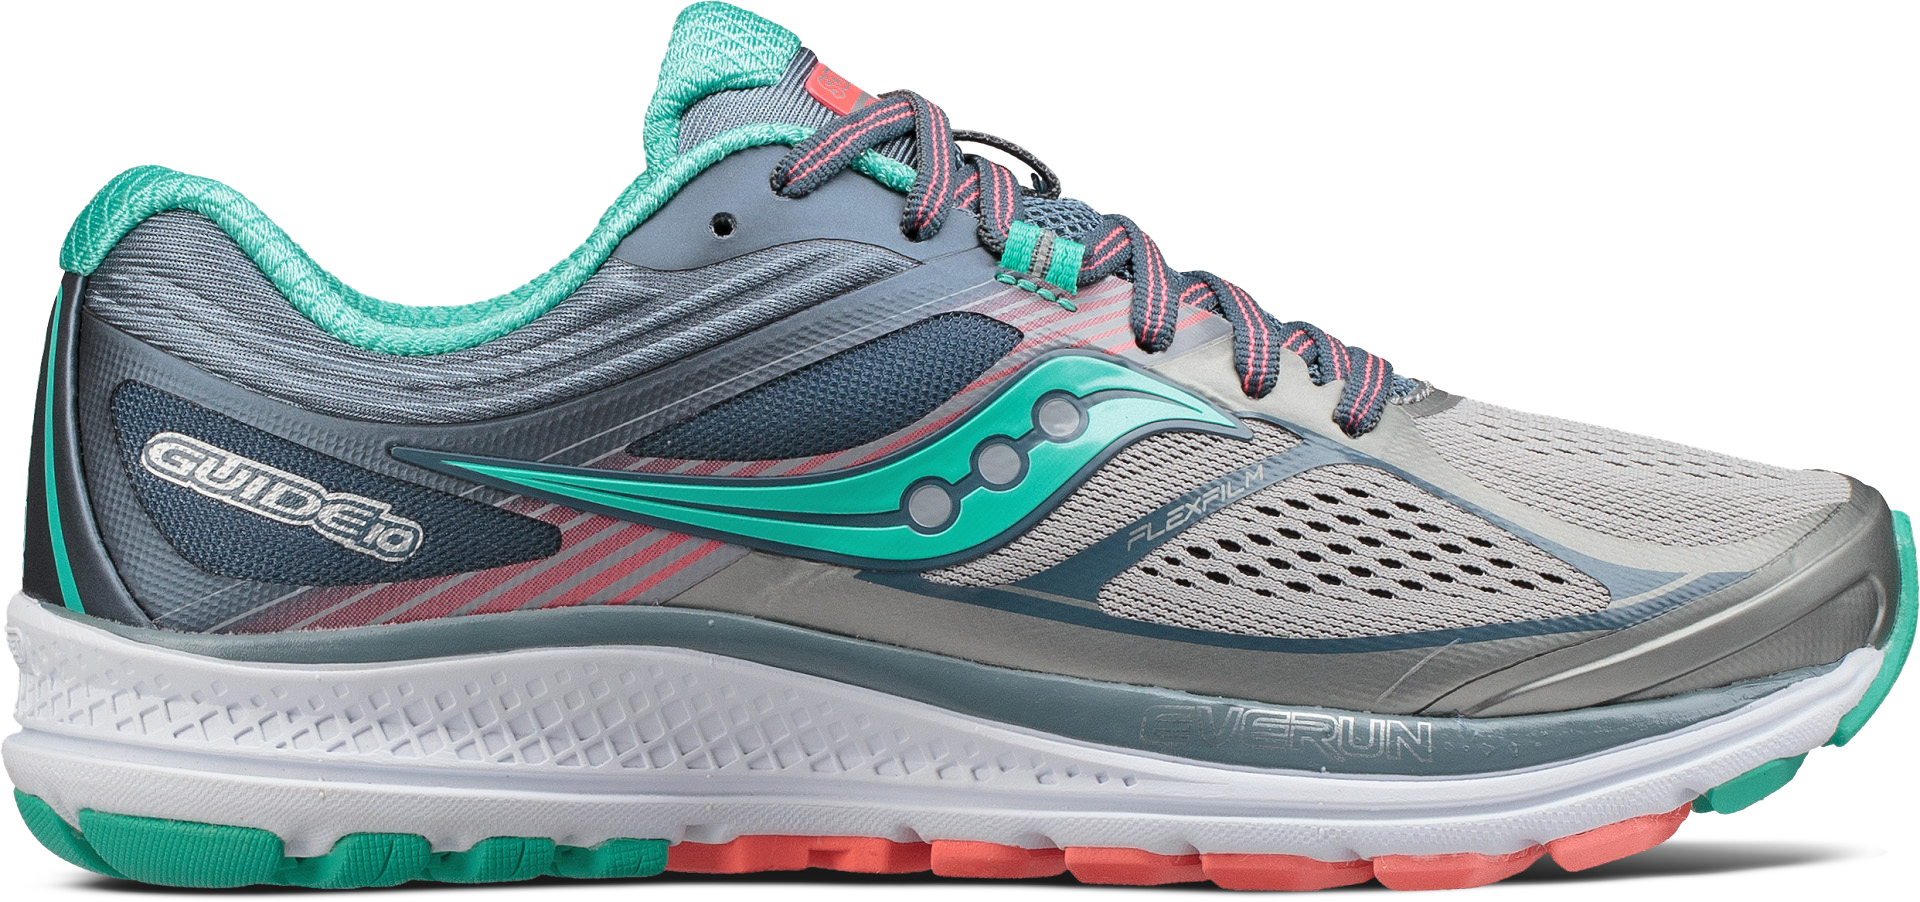 e27de9ec423c5 Saucony Guide 10 Road Running Shoes - Women s